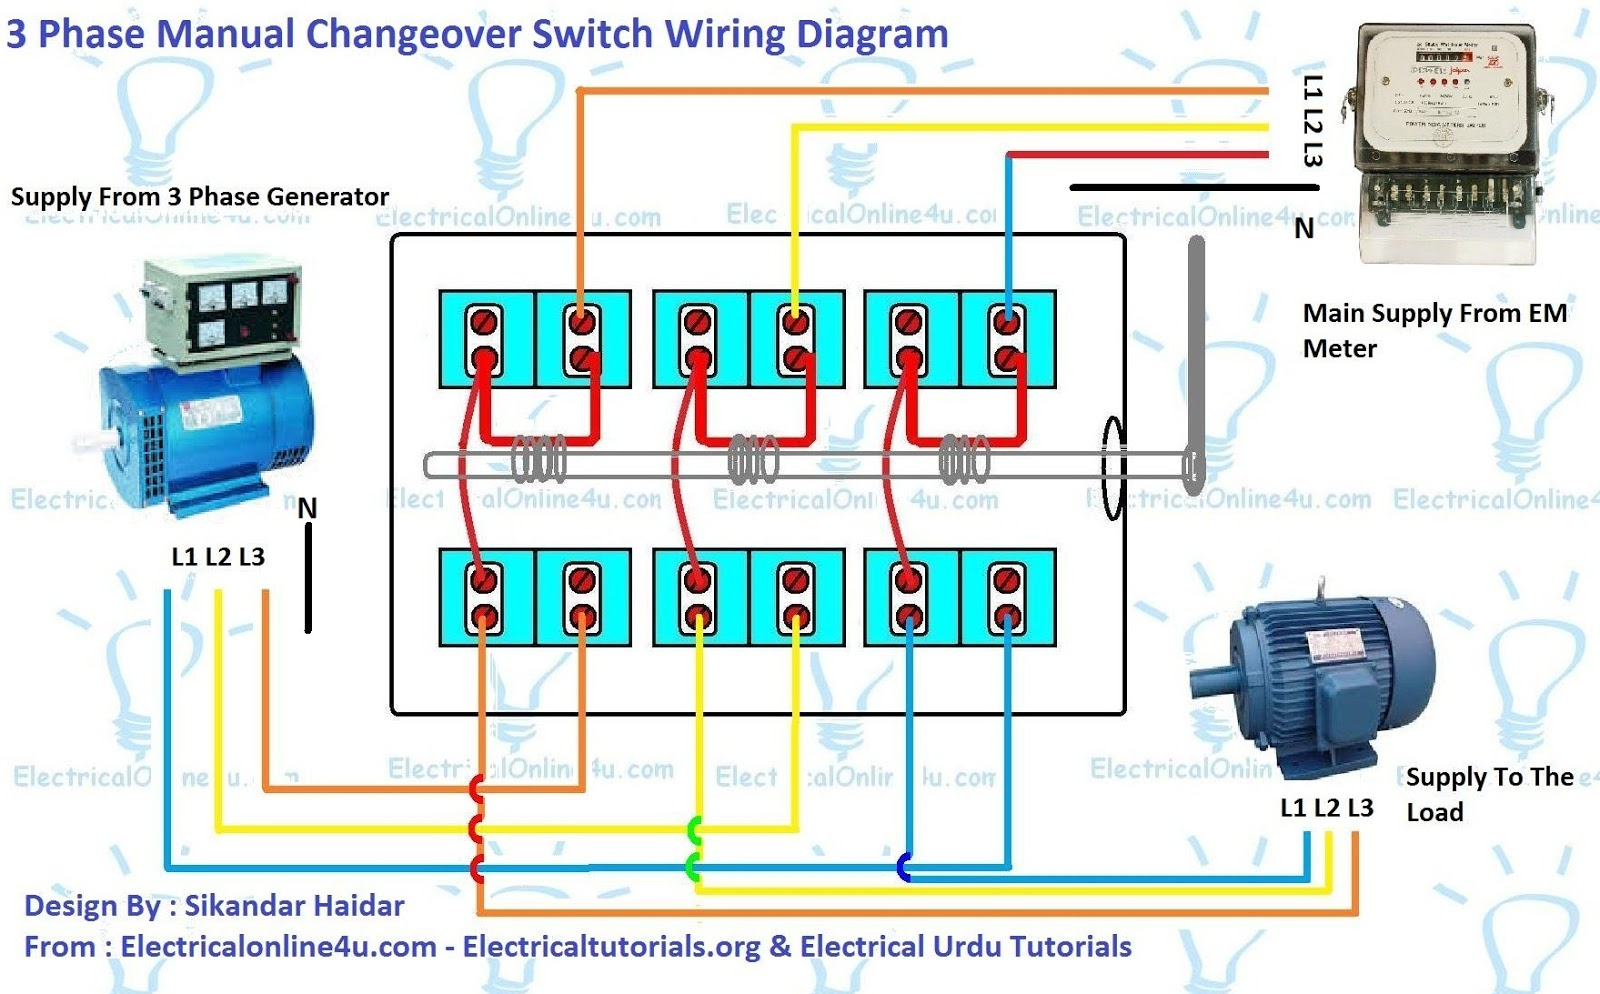 3%2Bphase%2Bmanual%2Bchangeover%2Bswitch%2Bwiring%2Bdiagram 3 phase manual changeover switch wiring diagram for generator changeover switch wiring diagram generator at mifinder.co